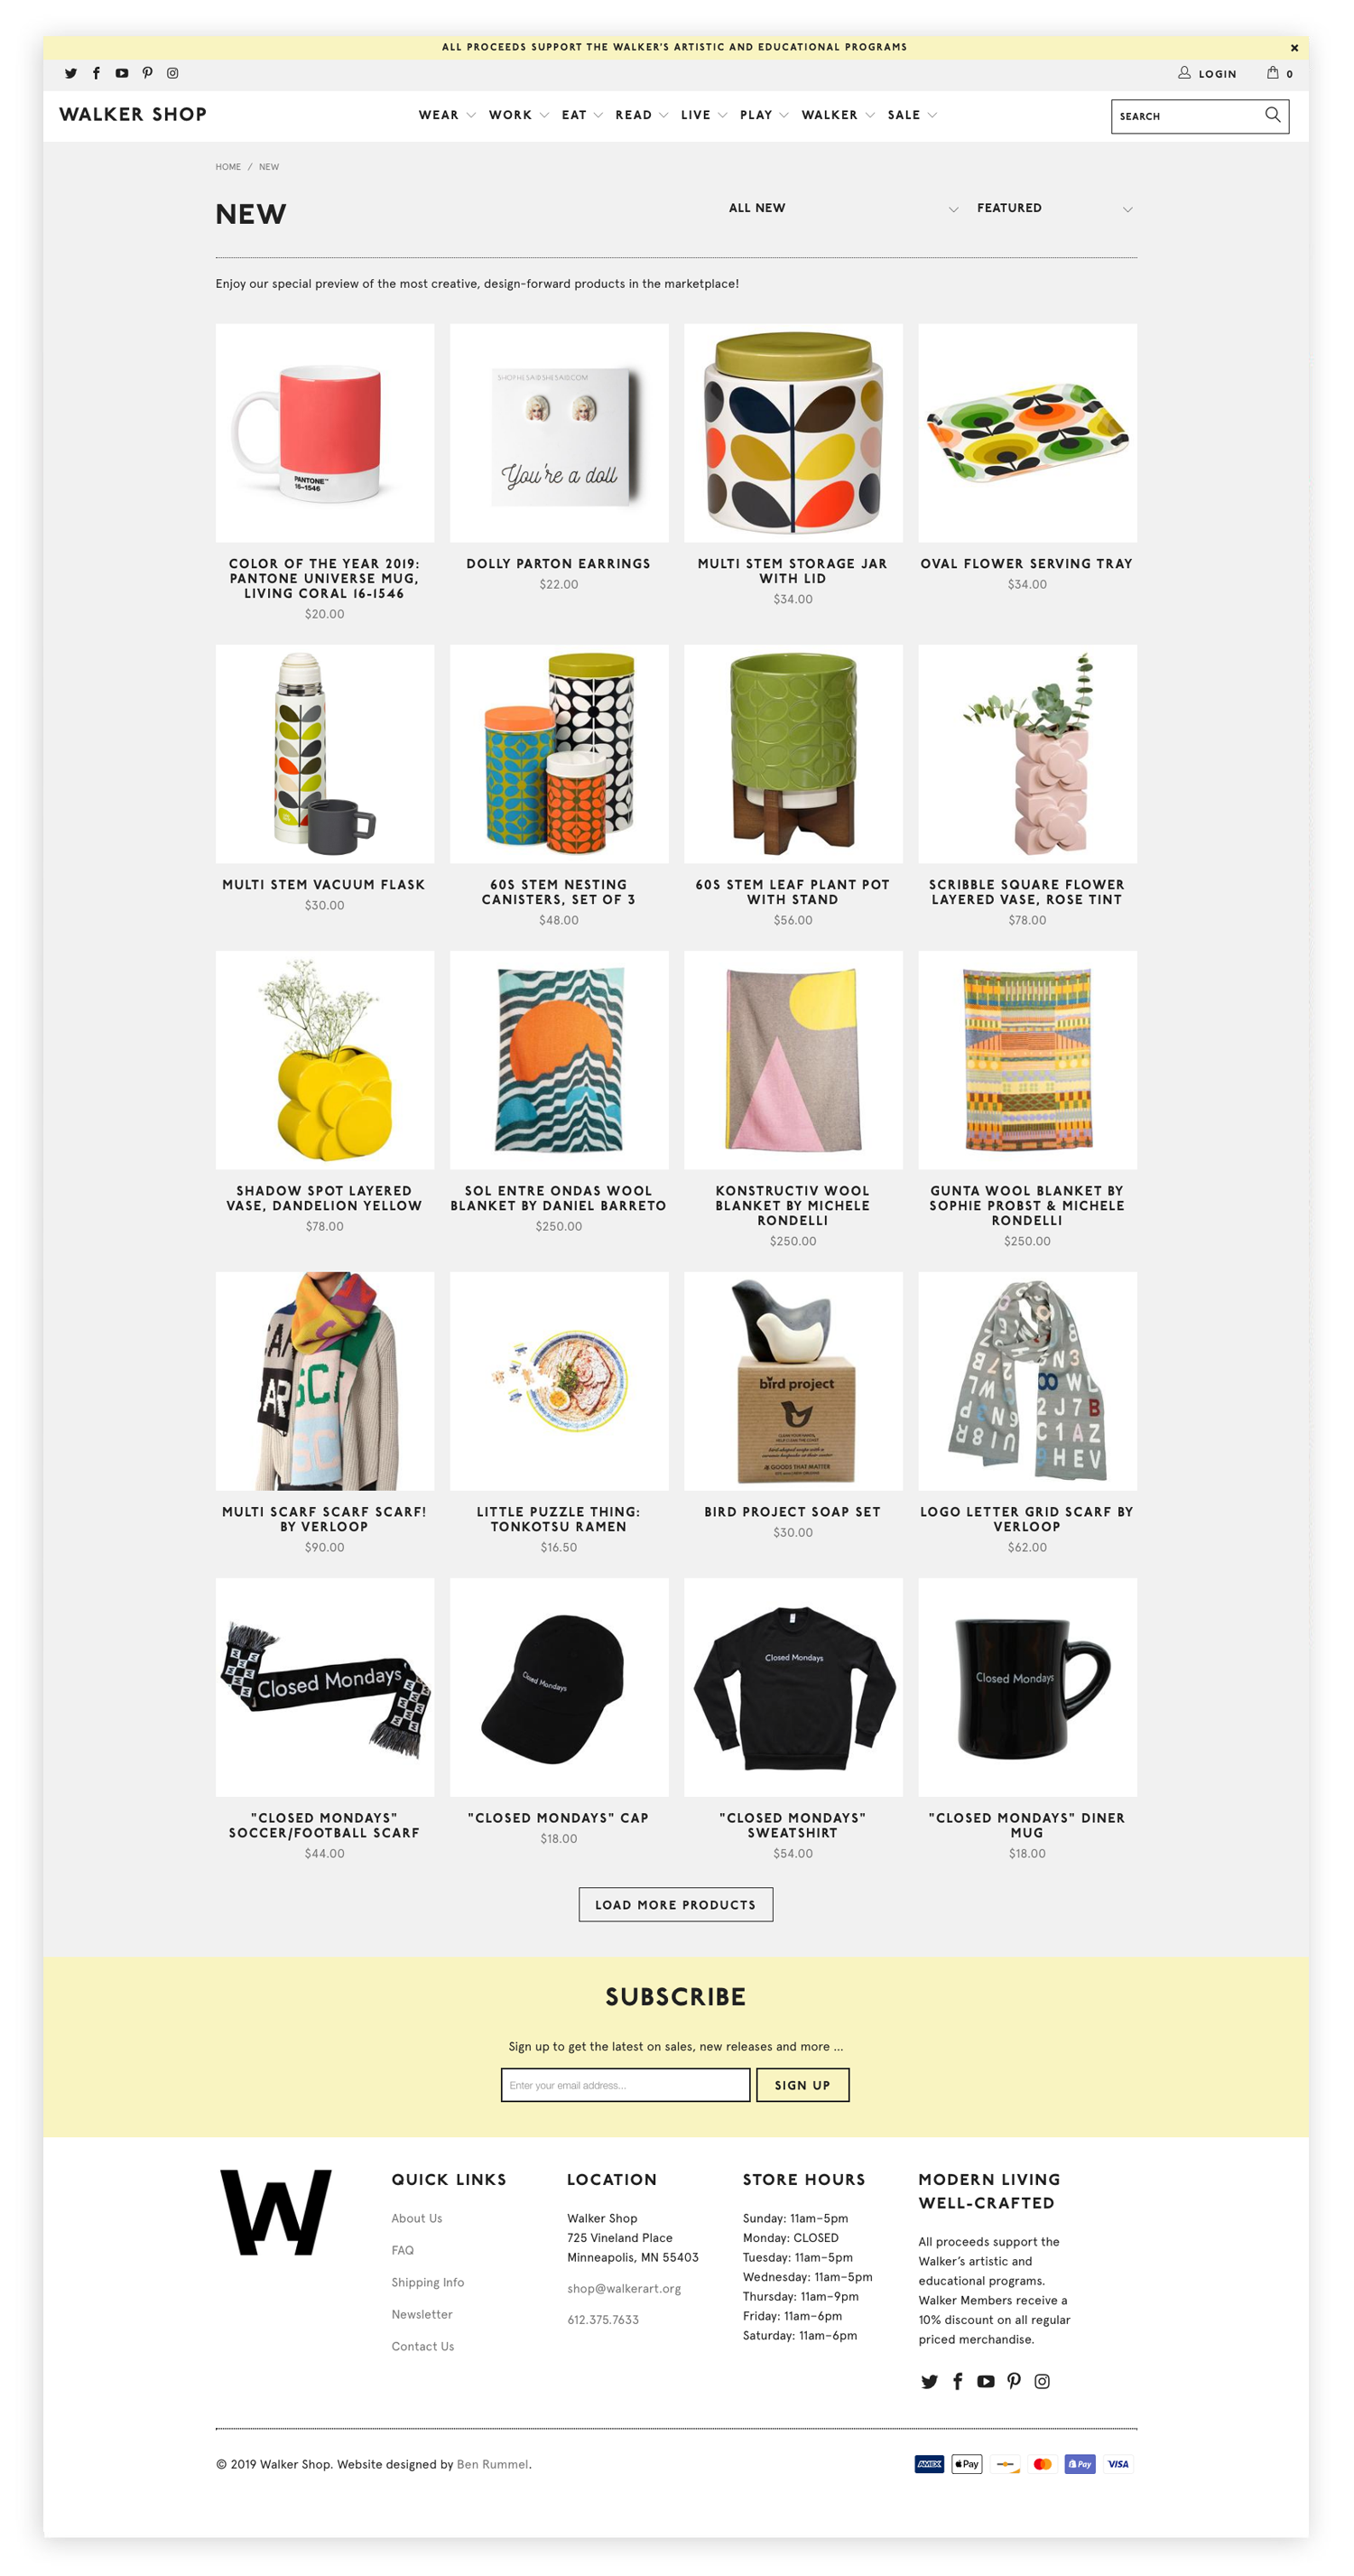 walker-shop-site-collection-page-new-ben-rummel-design.png